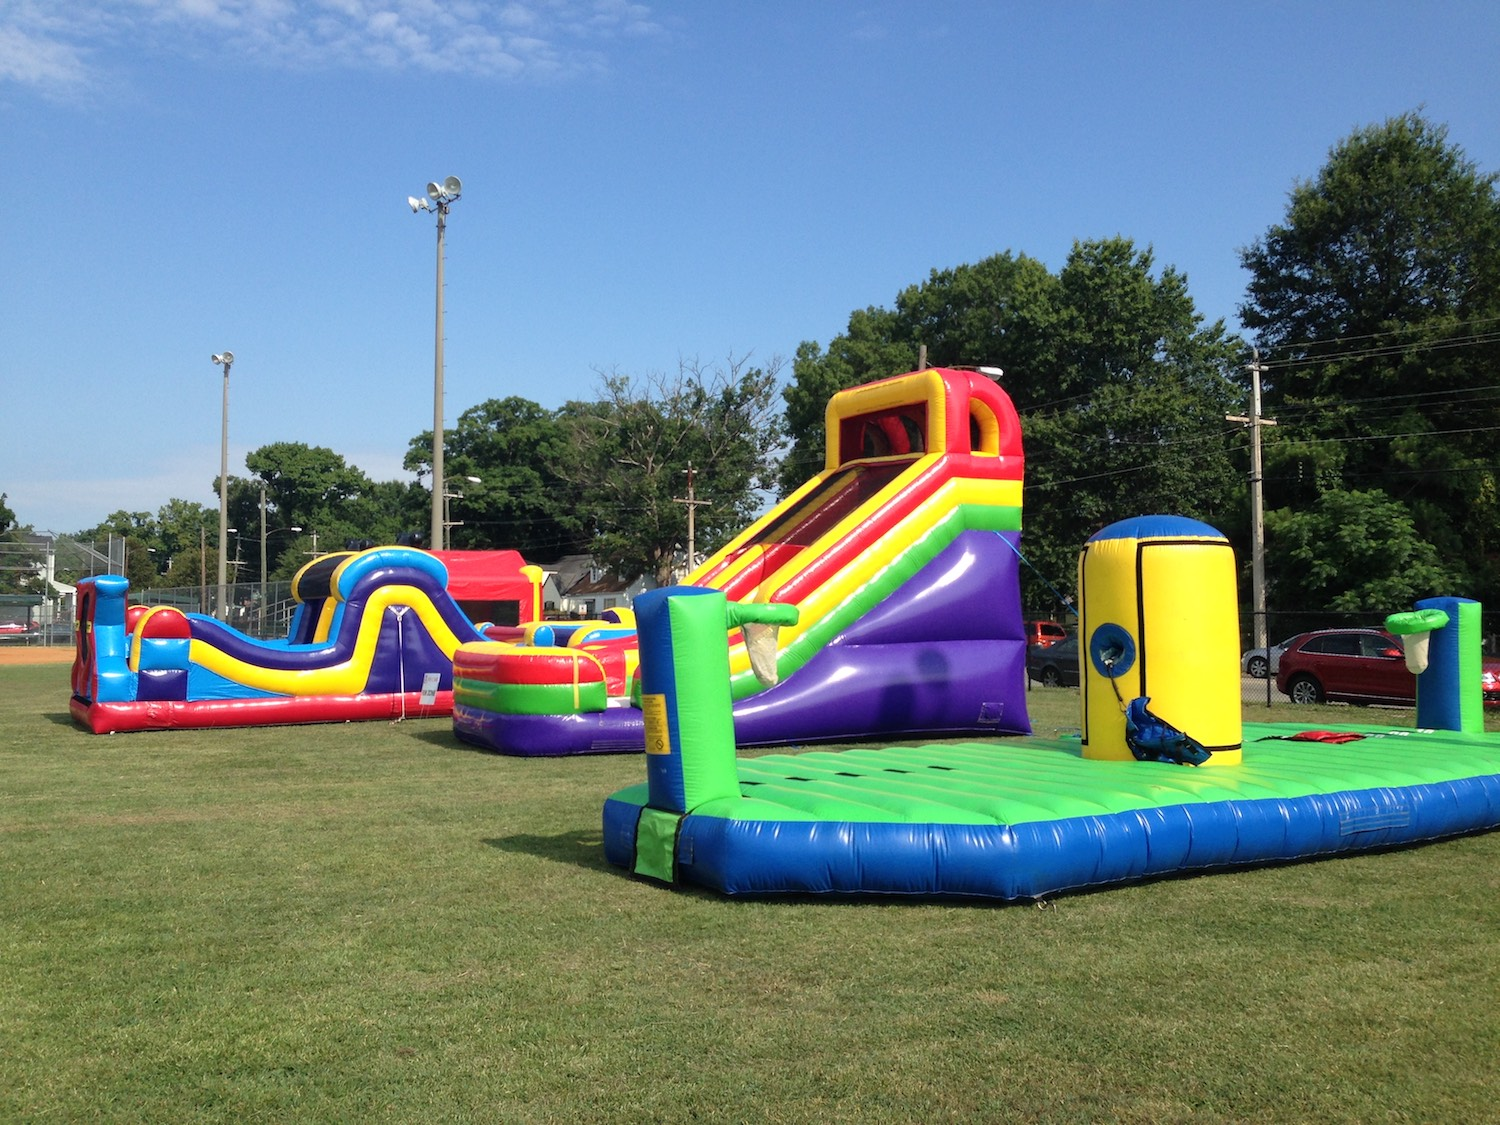 inflatable obstacle course, slide, and bungee run.